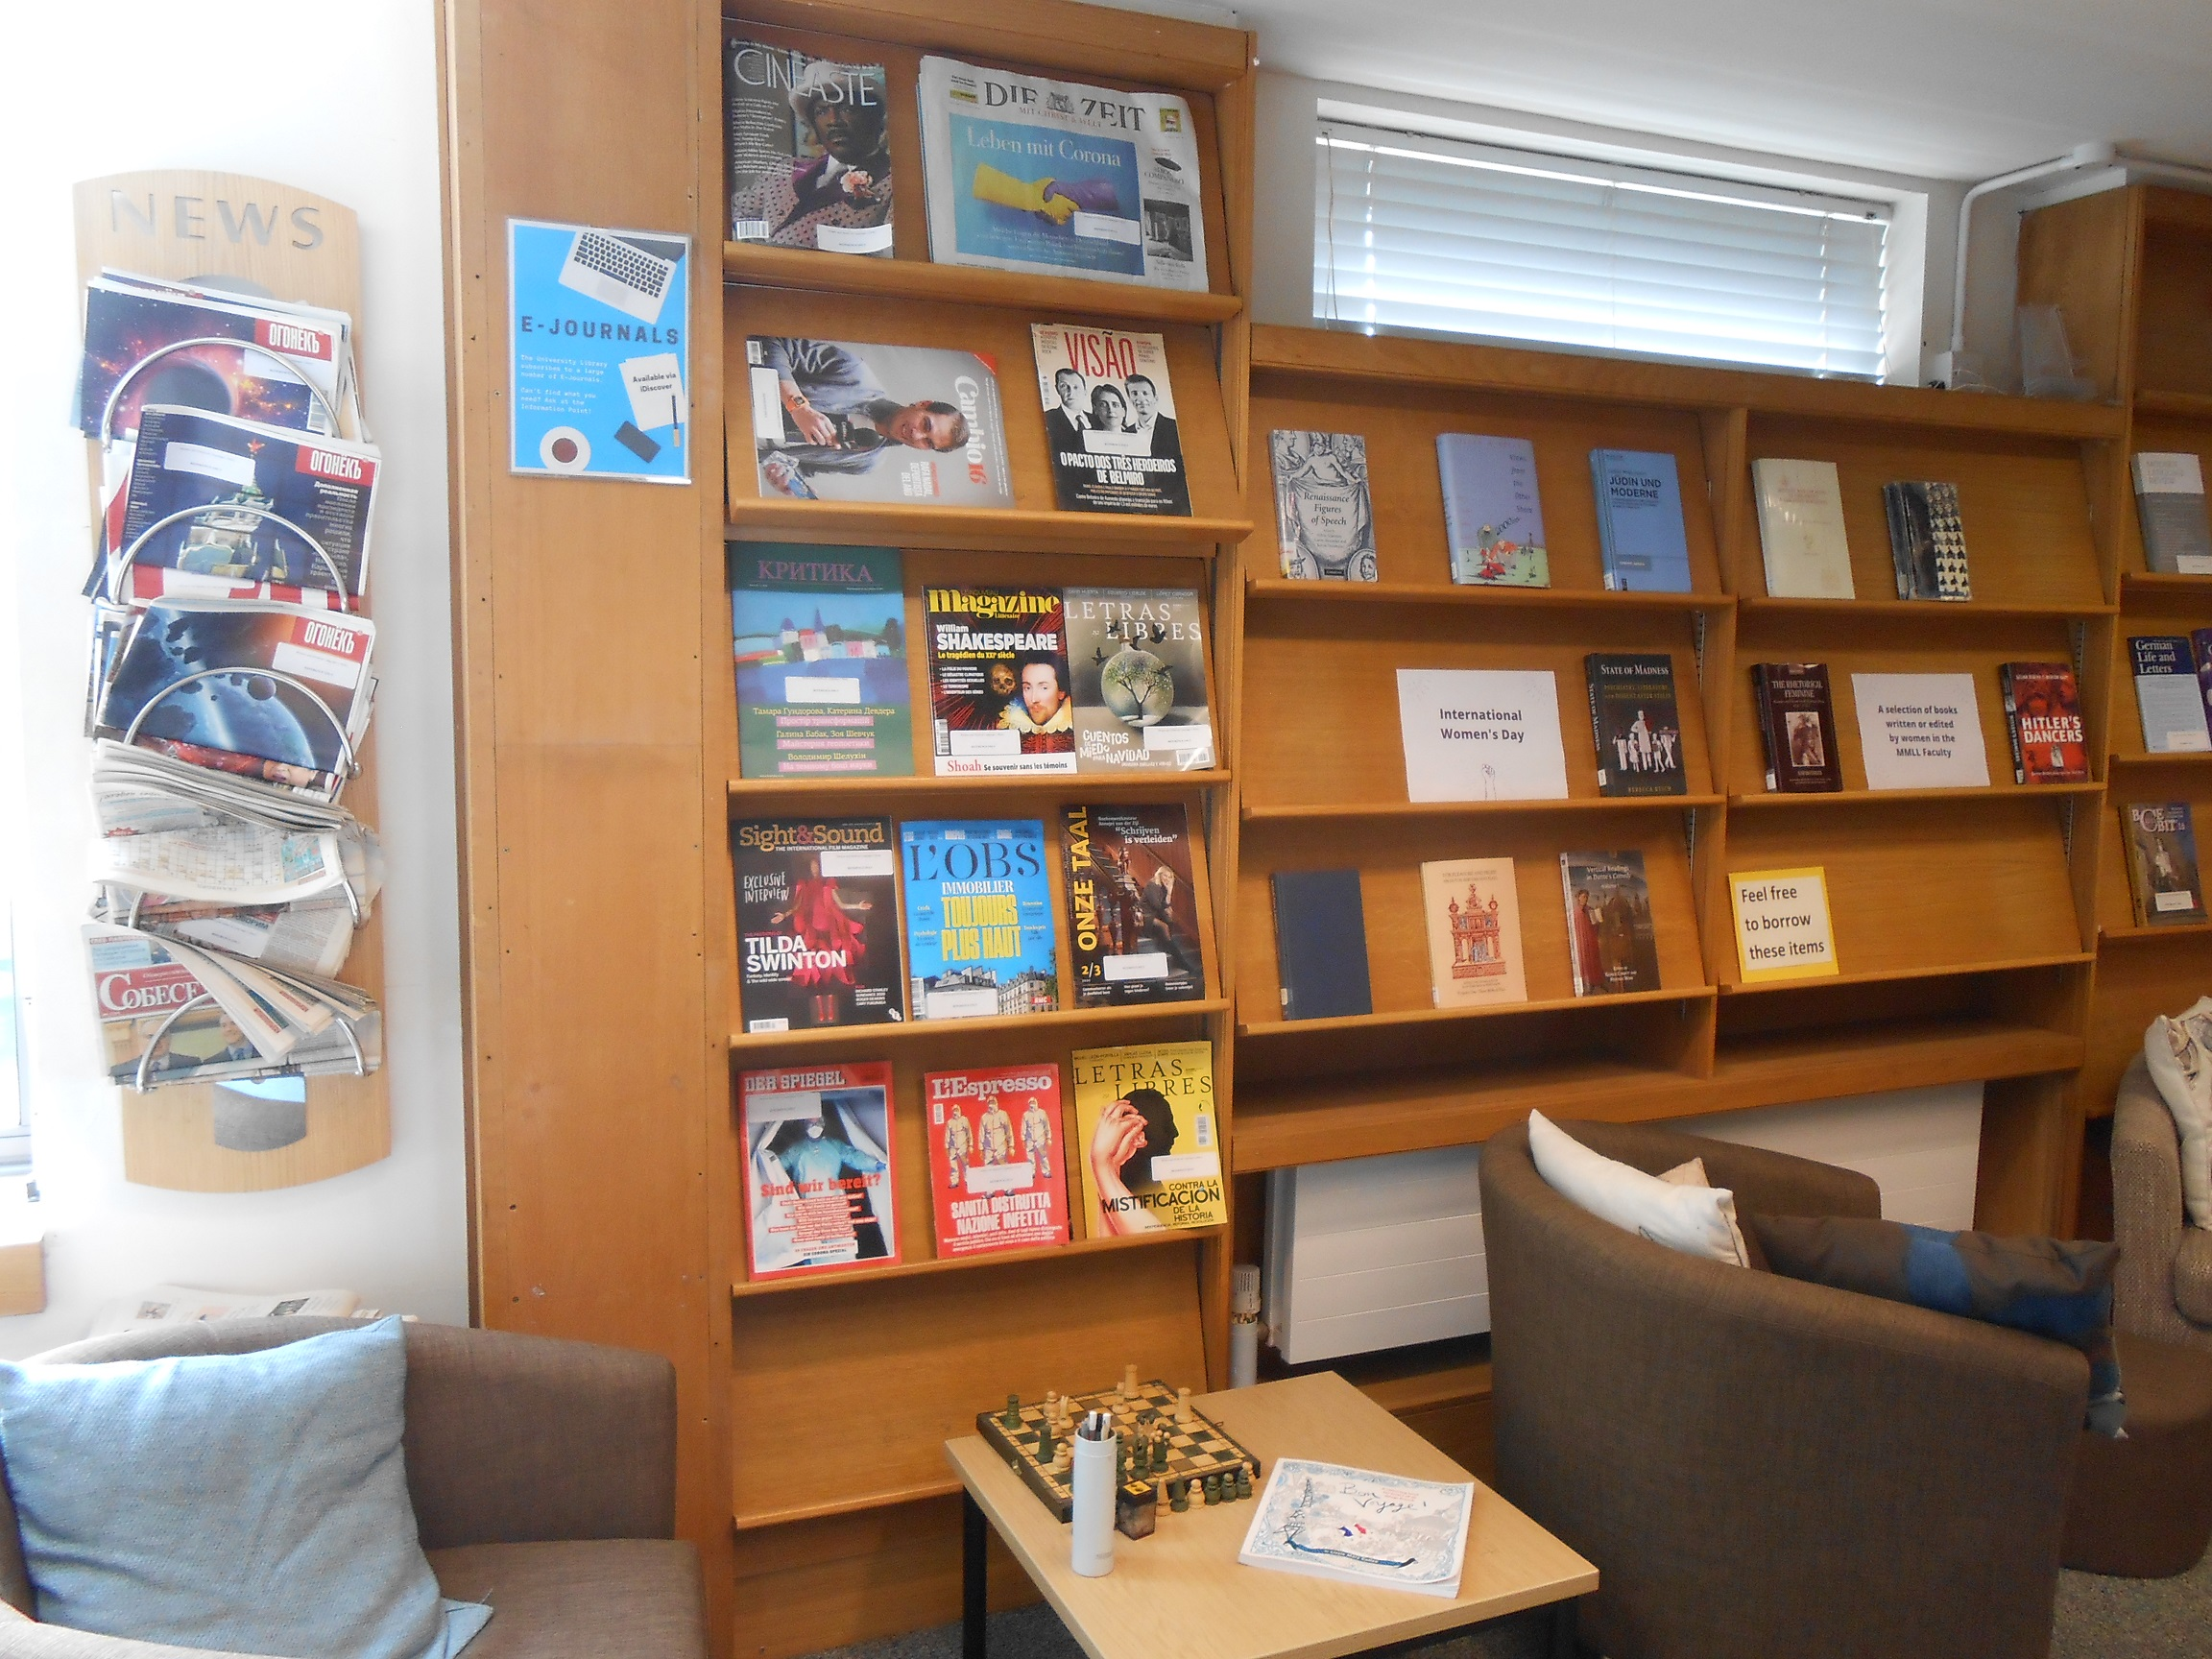 Colour photo of the MMLL Library lobby with a book exhibition